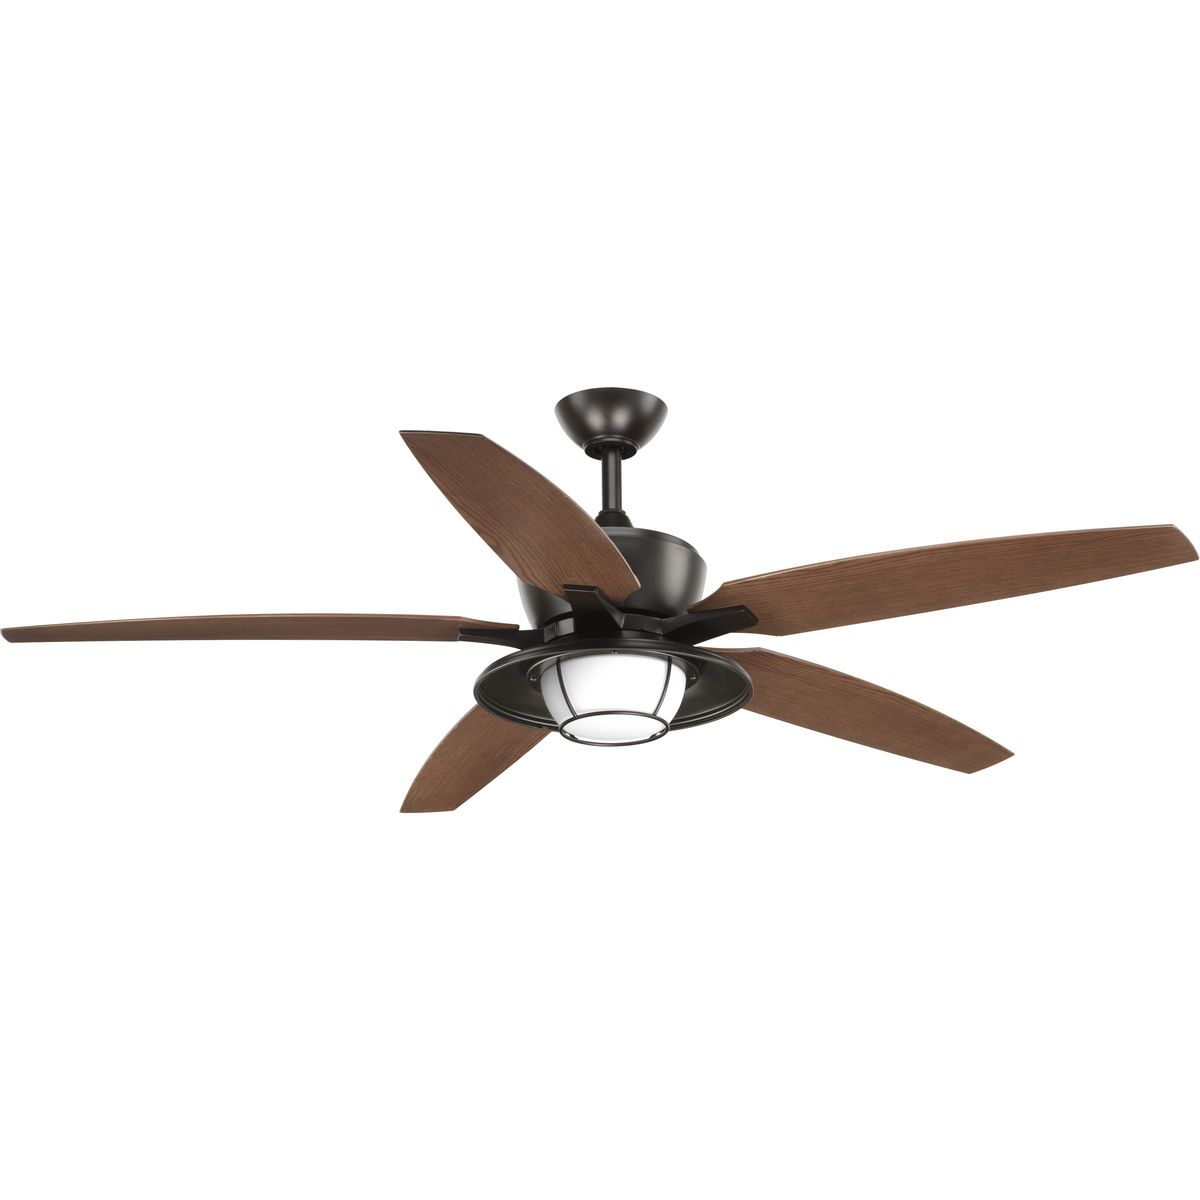 60 Inch Outdoor Ceiling Fans Montague Collection 60 Quot Indoor Outdoor Ceiling Fan Brand